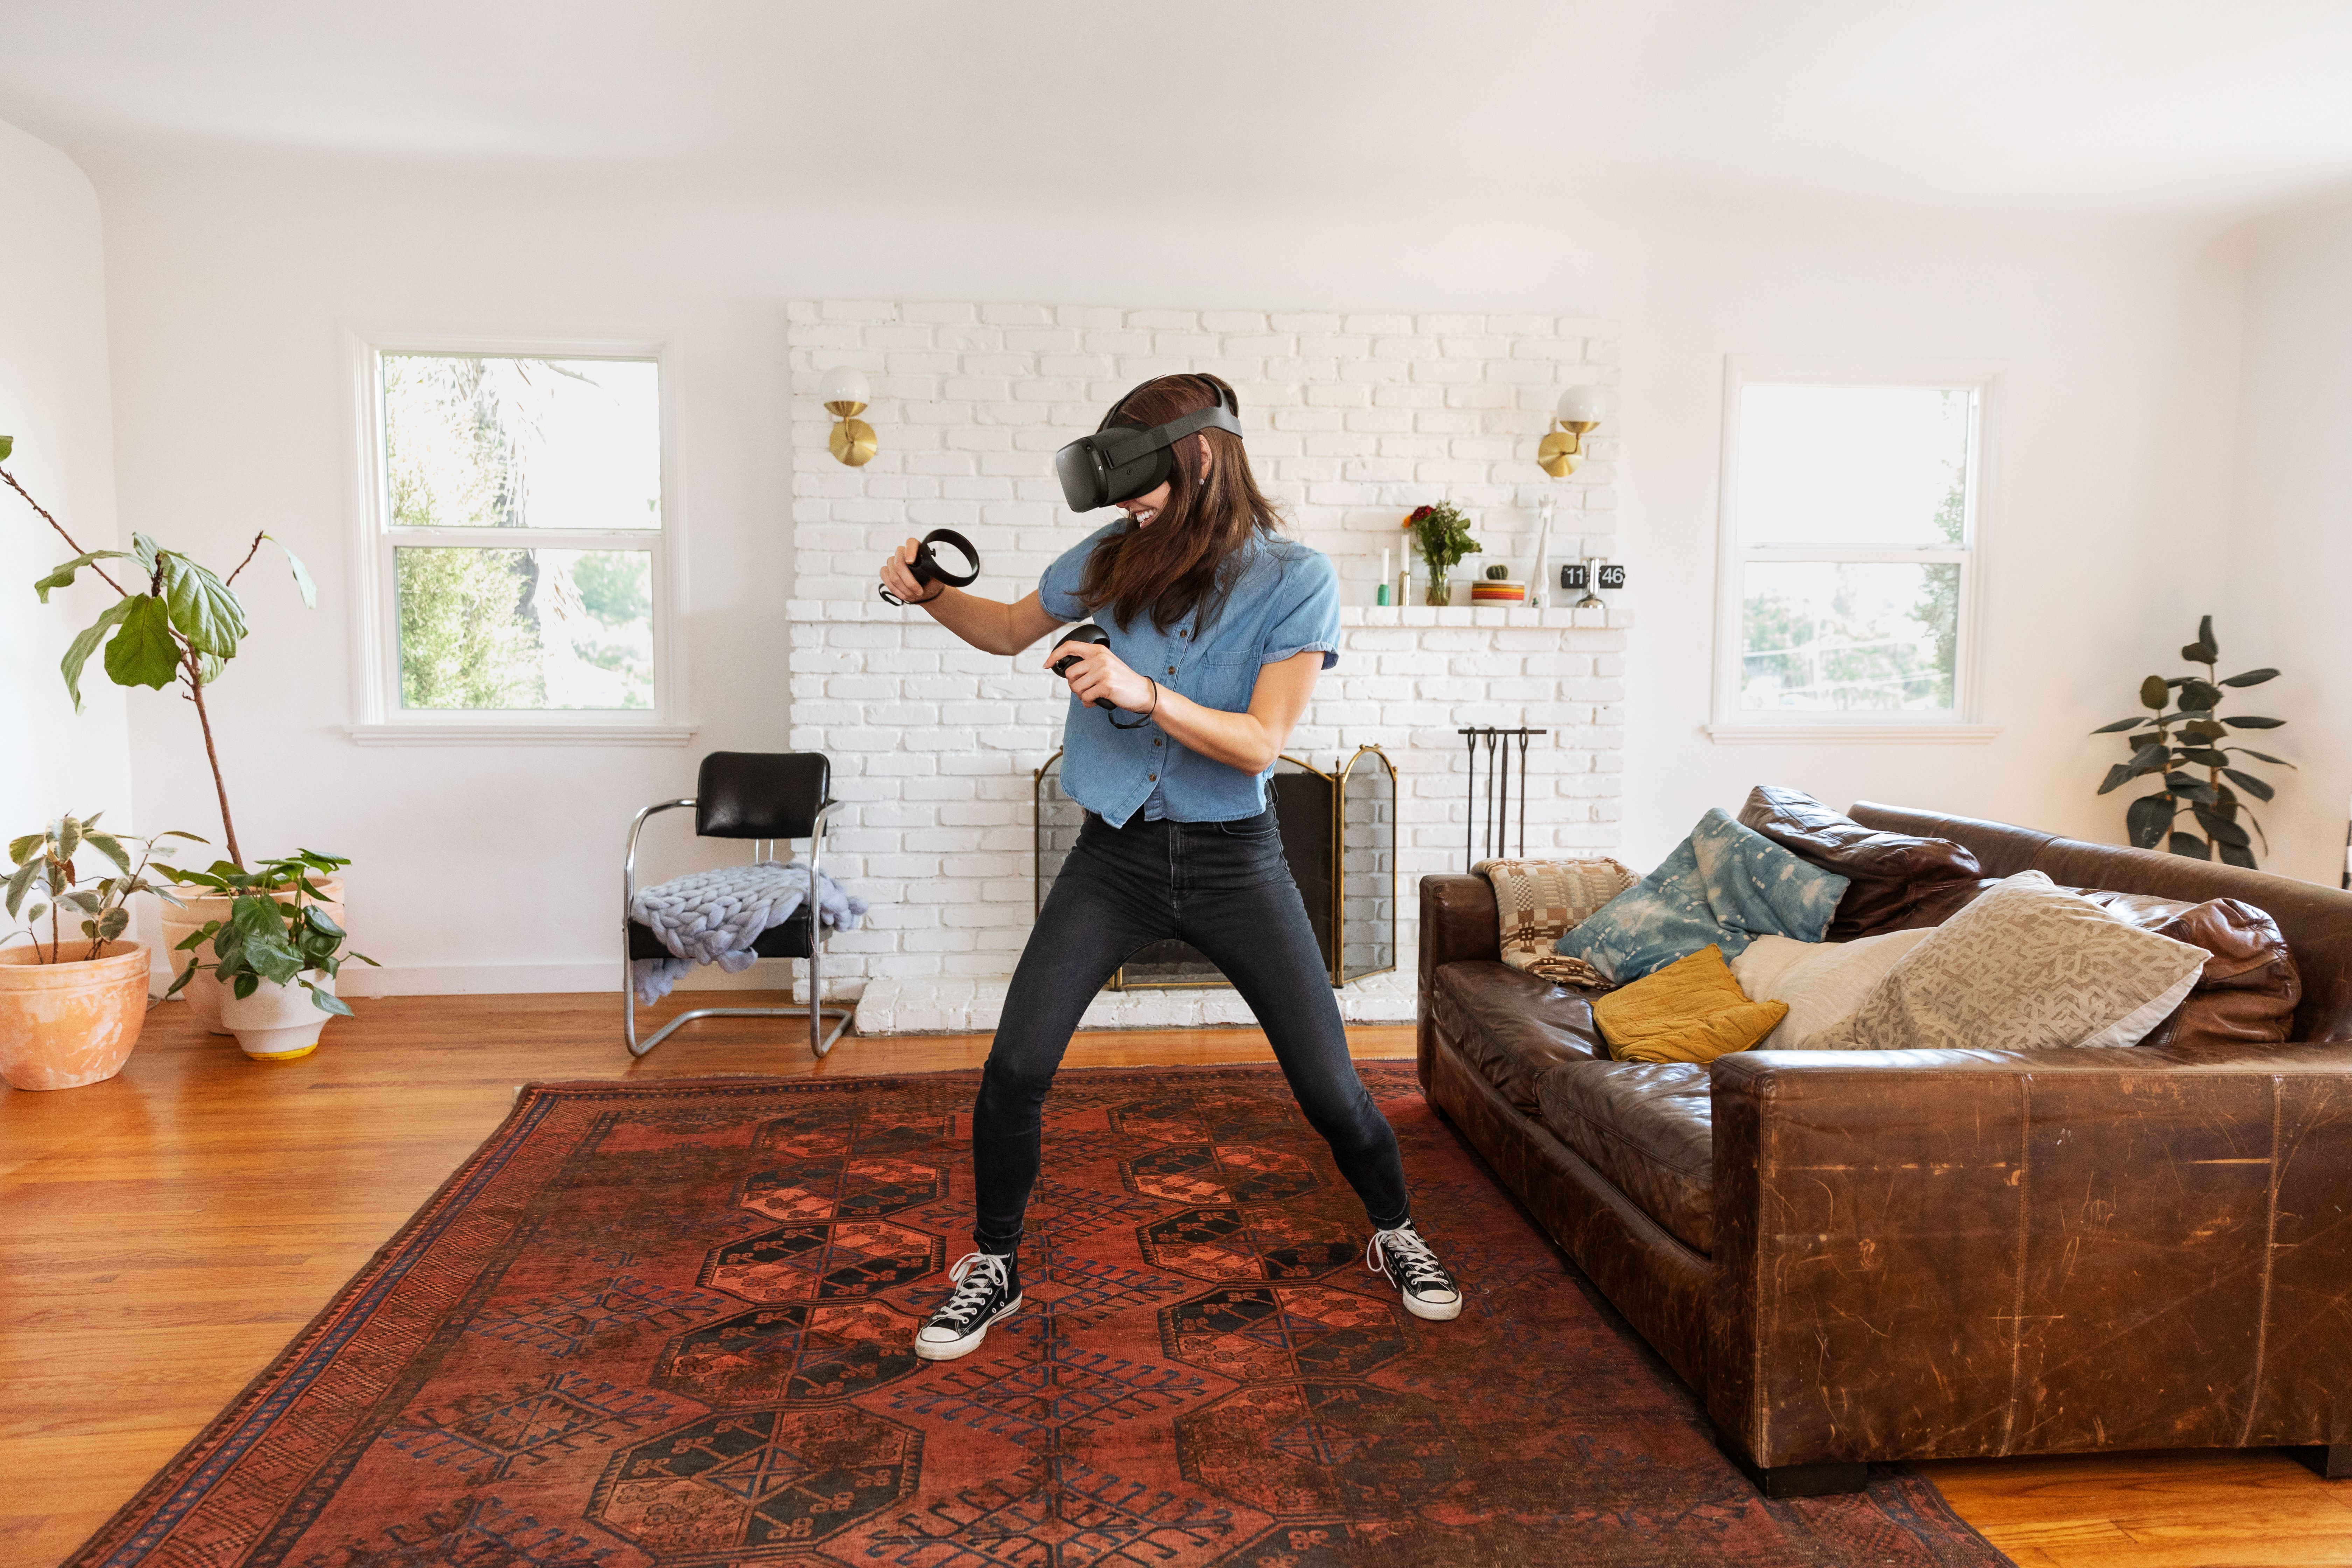 Oculus Quest brings your real-world motion into VR  Here's what